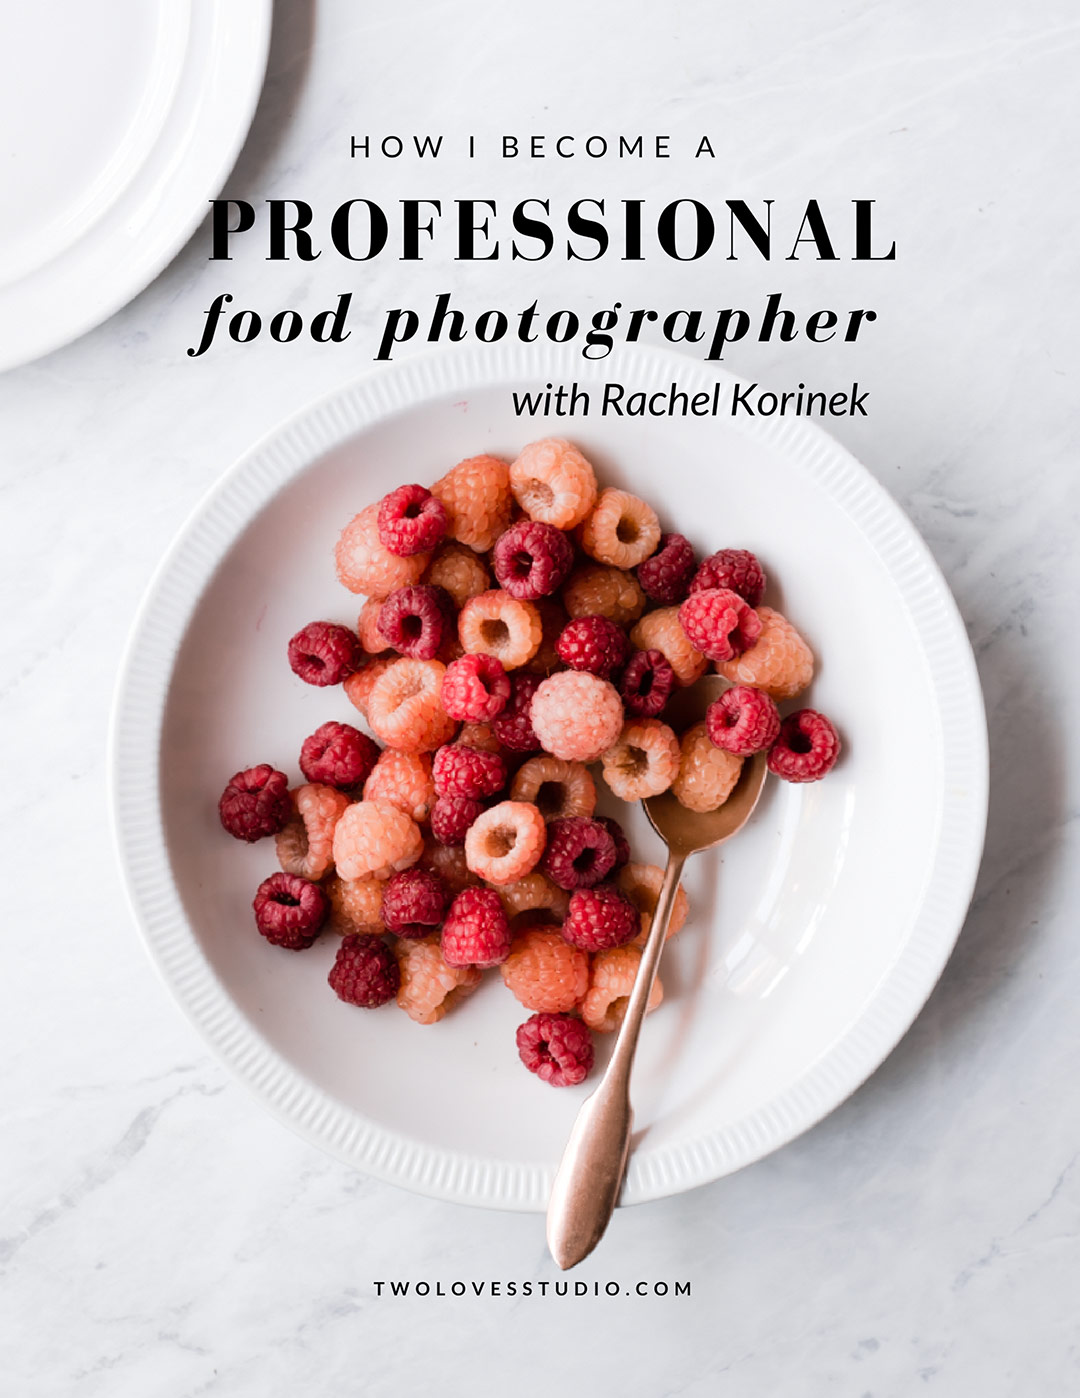 How Rachel Korinek became a professional food photographer. Click to watch her story.